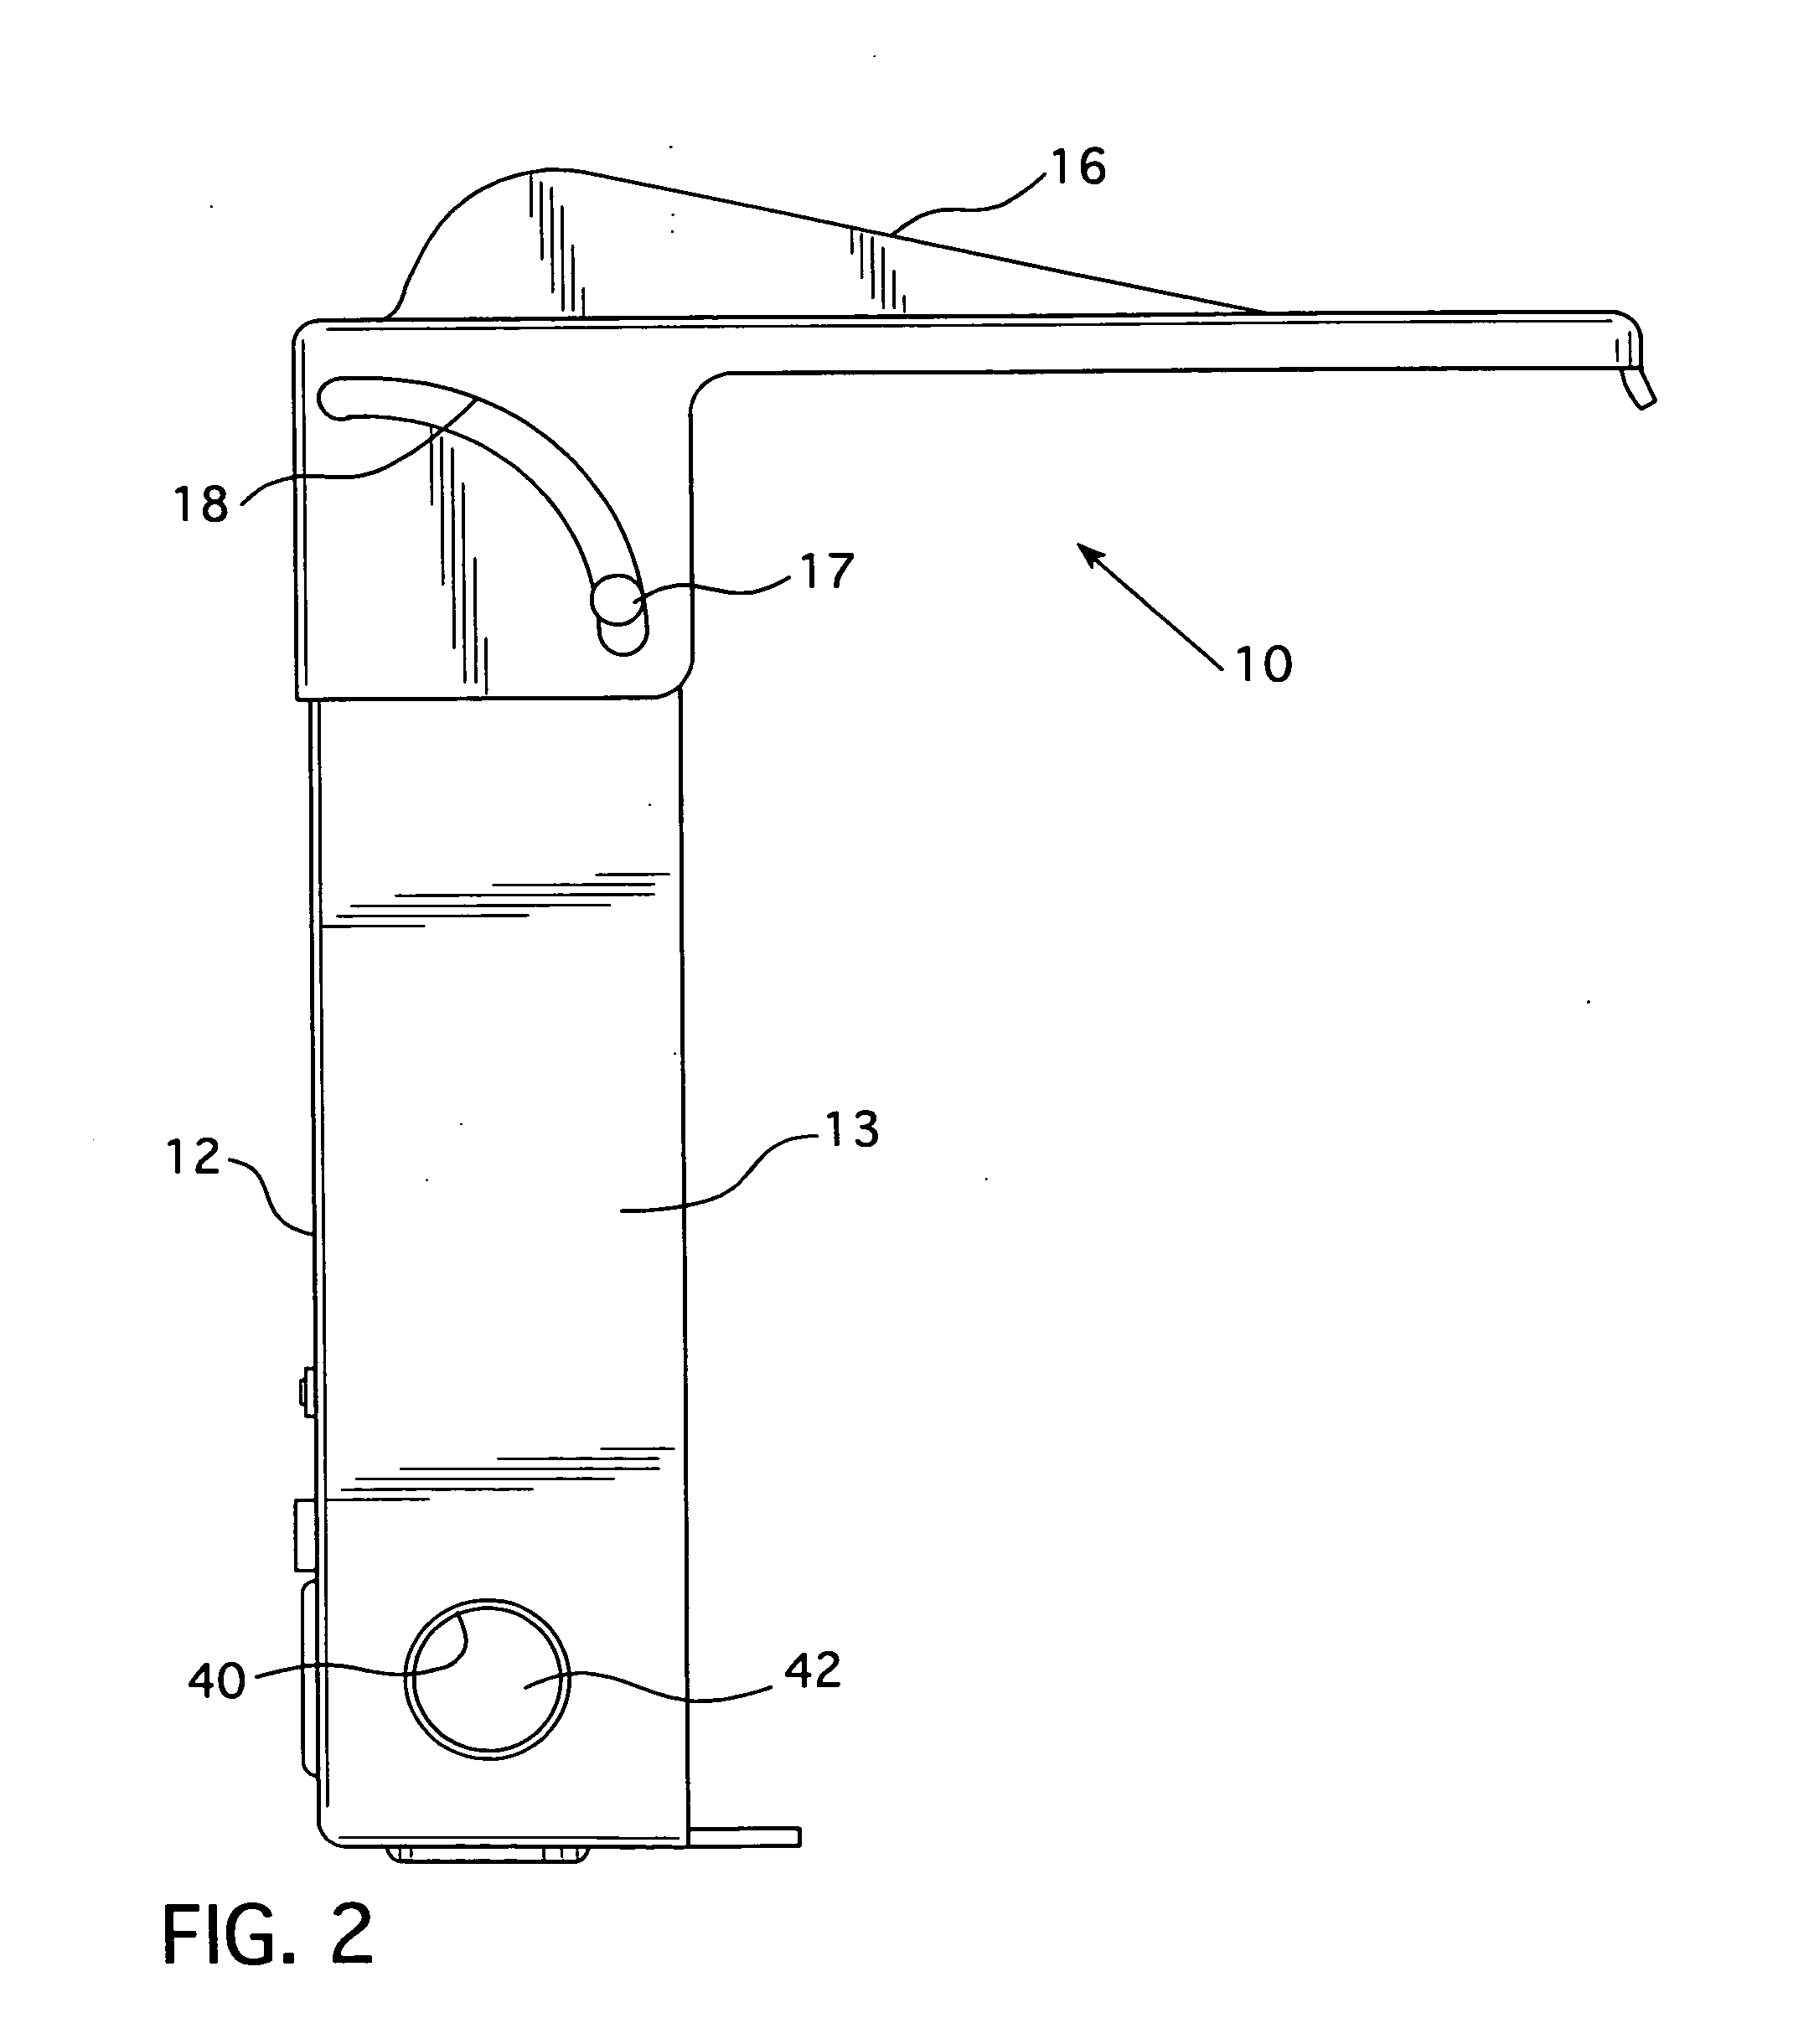 patente us weather resistant electrical disconnect patent drawing